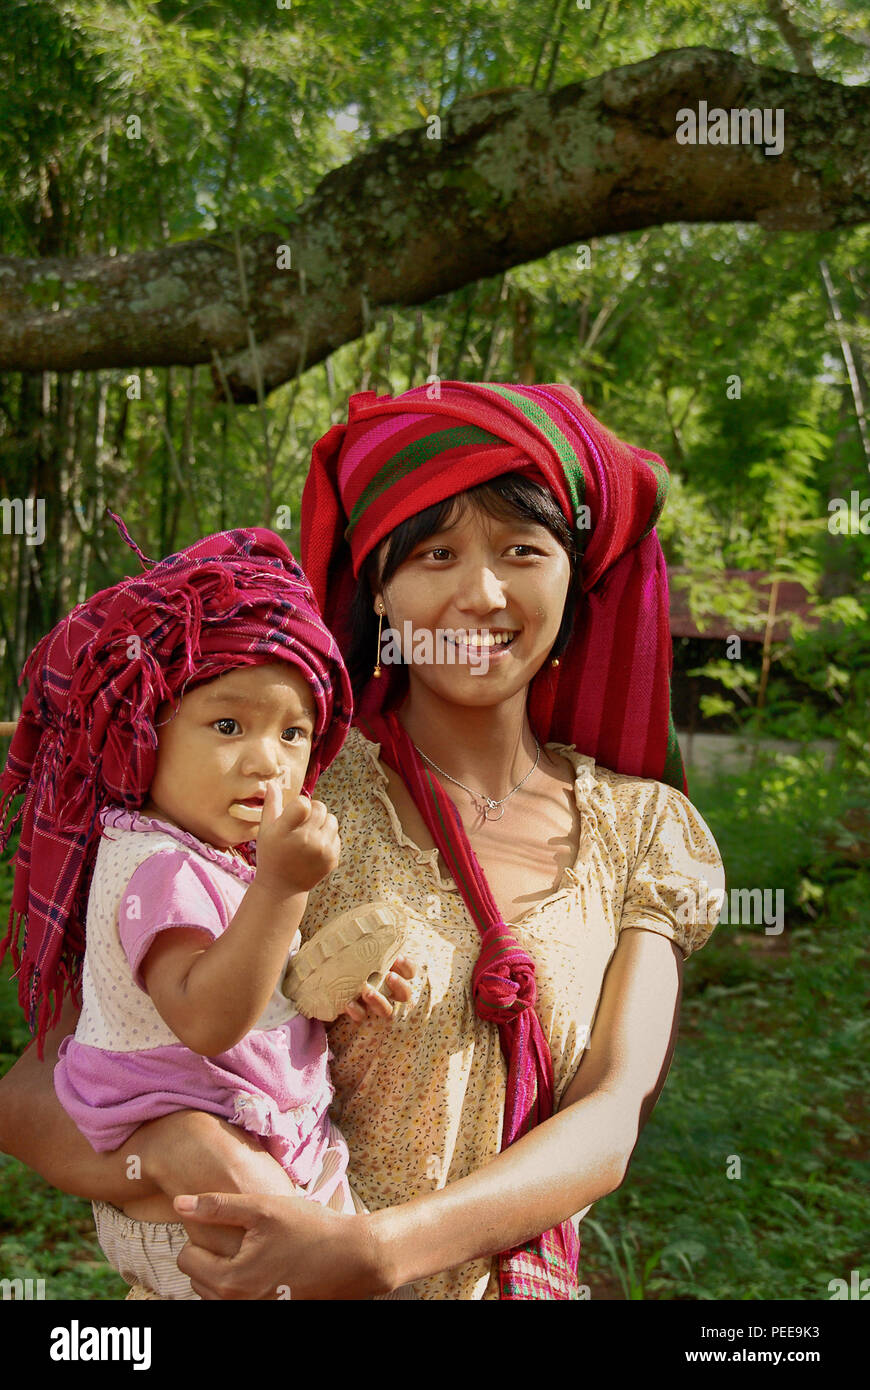 A young village woman is holding a child and smiling. - Stock Image